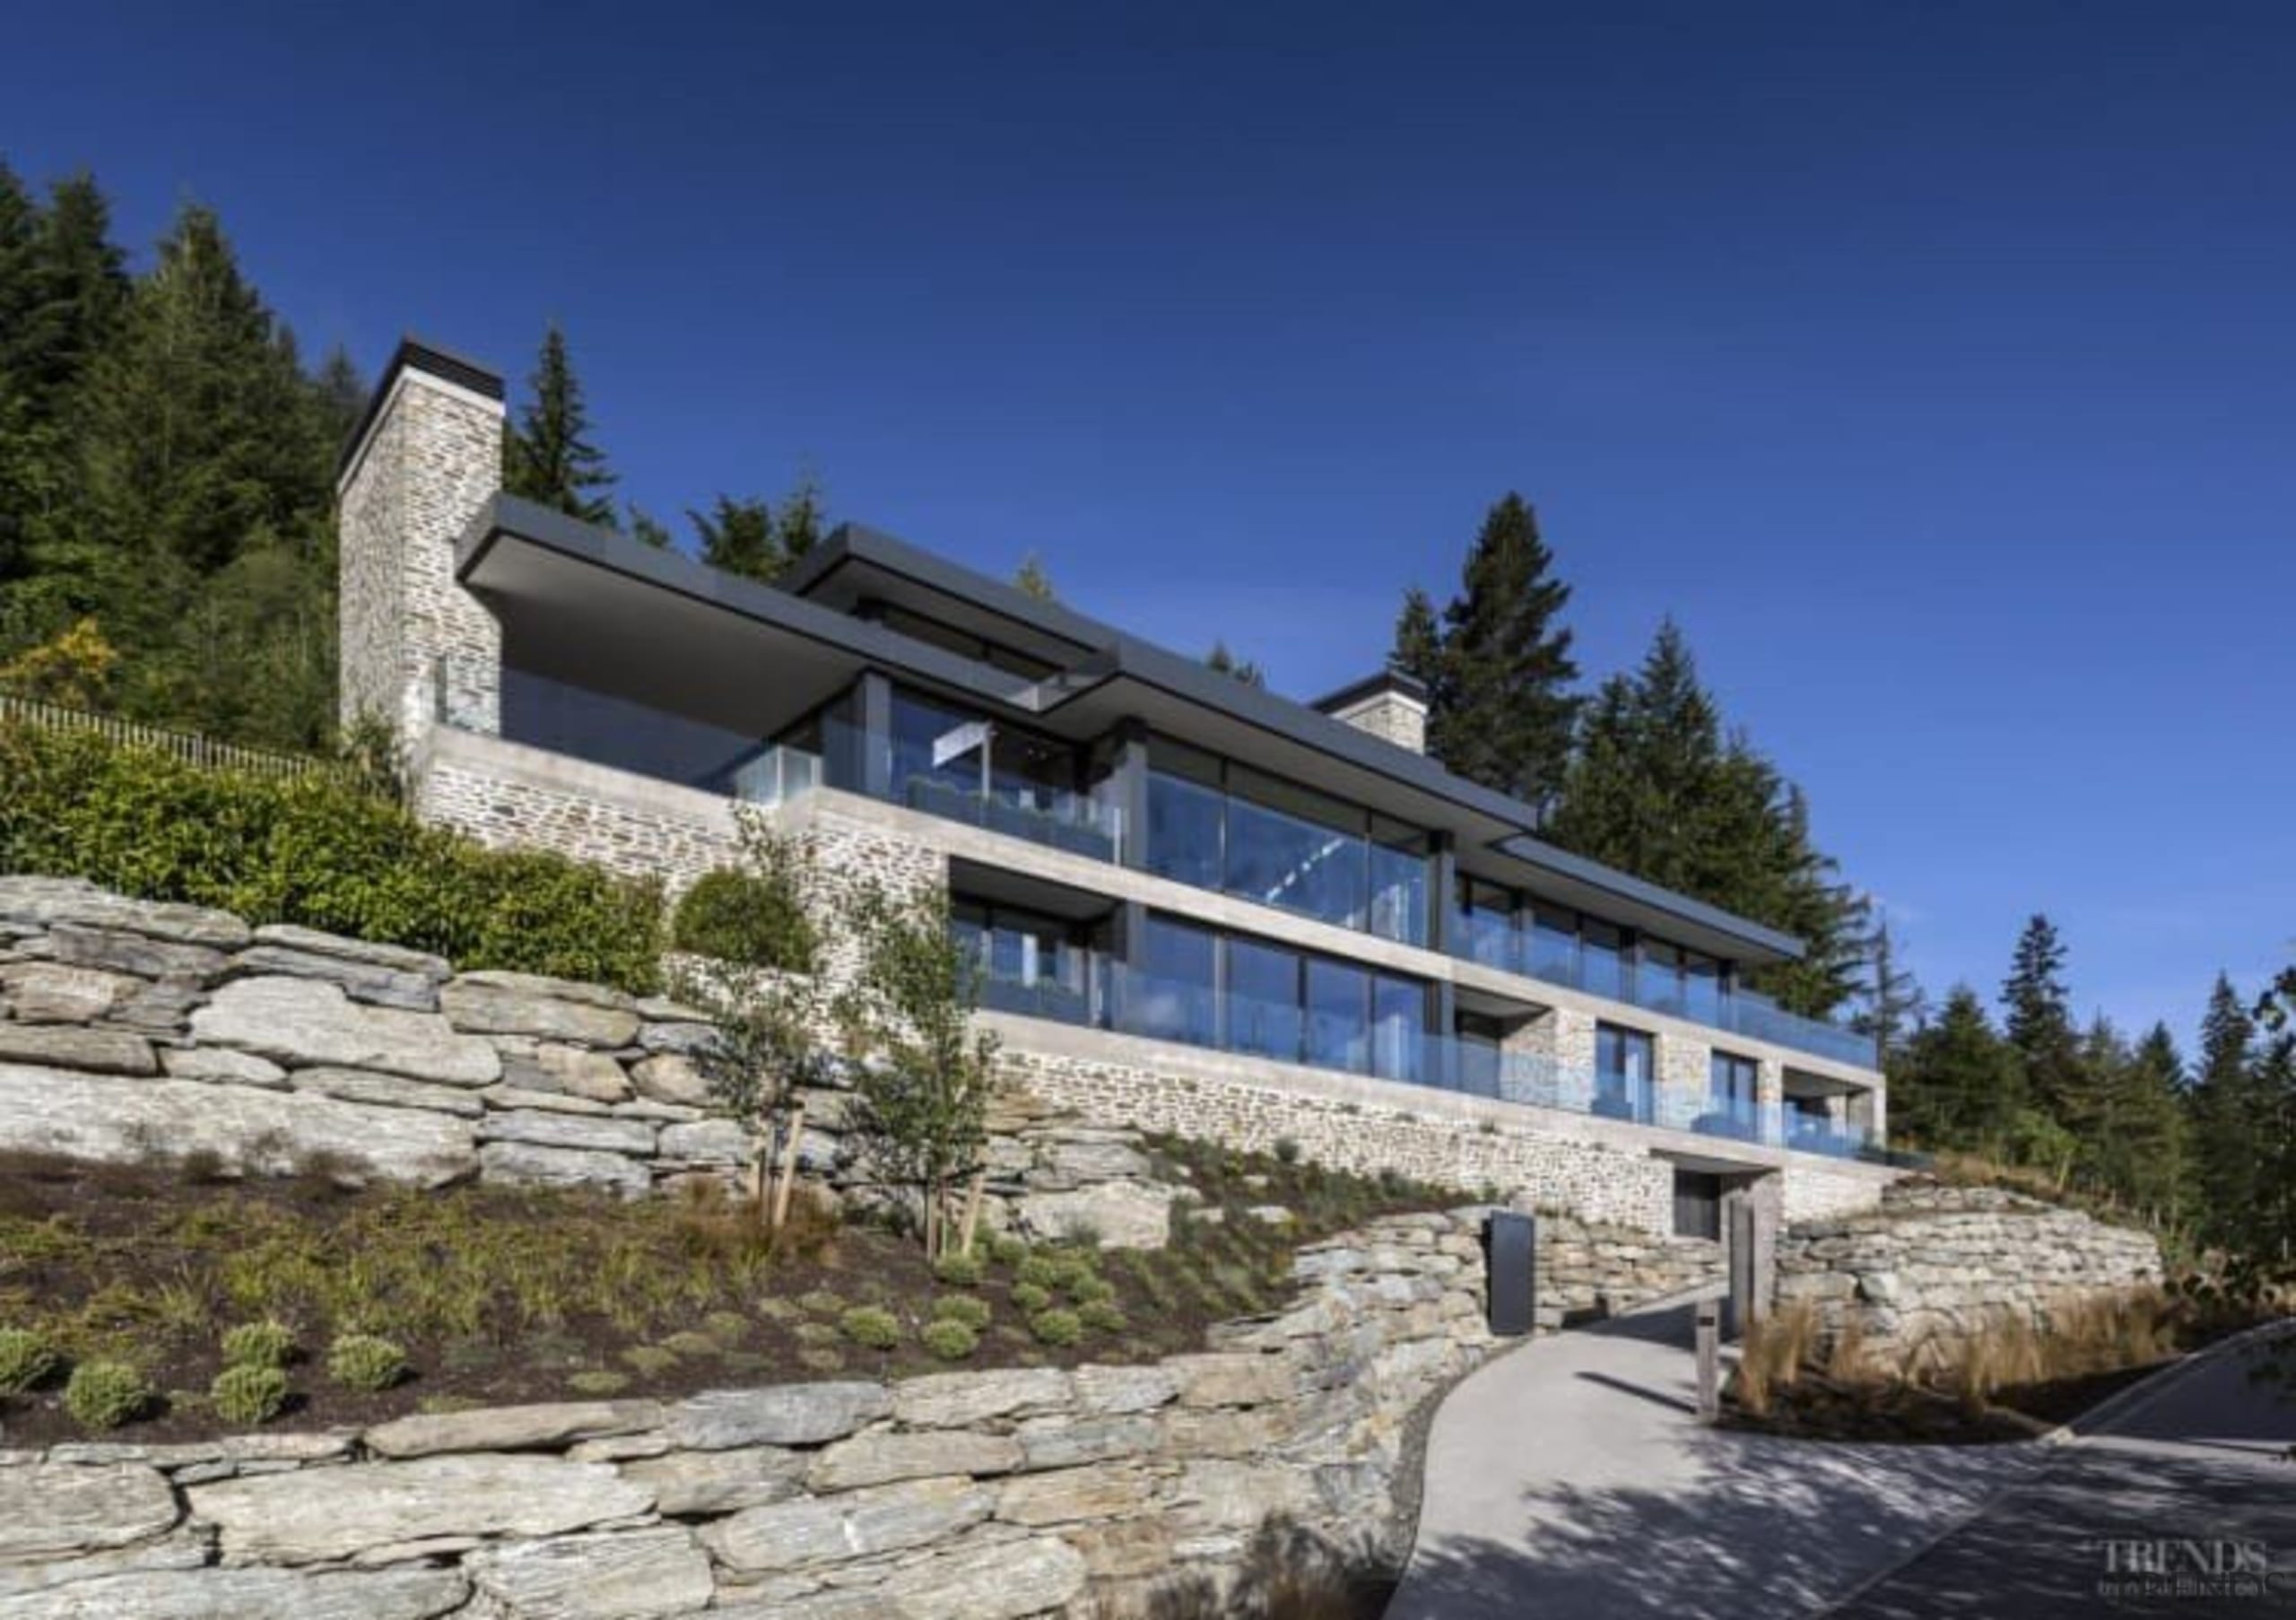 Mason & Wales ArchitectsSee the full storyThis building, cottage, estate, facade, home, house, mountain, mountain range, property, real estate, sky, villa, blue, gray